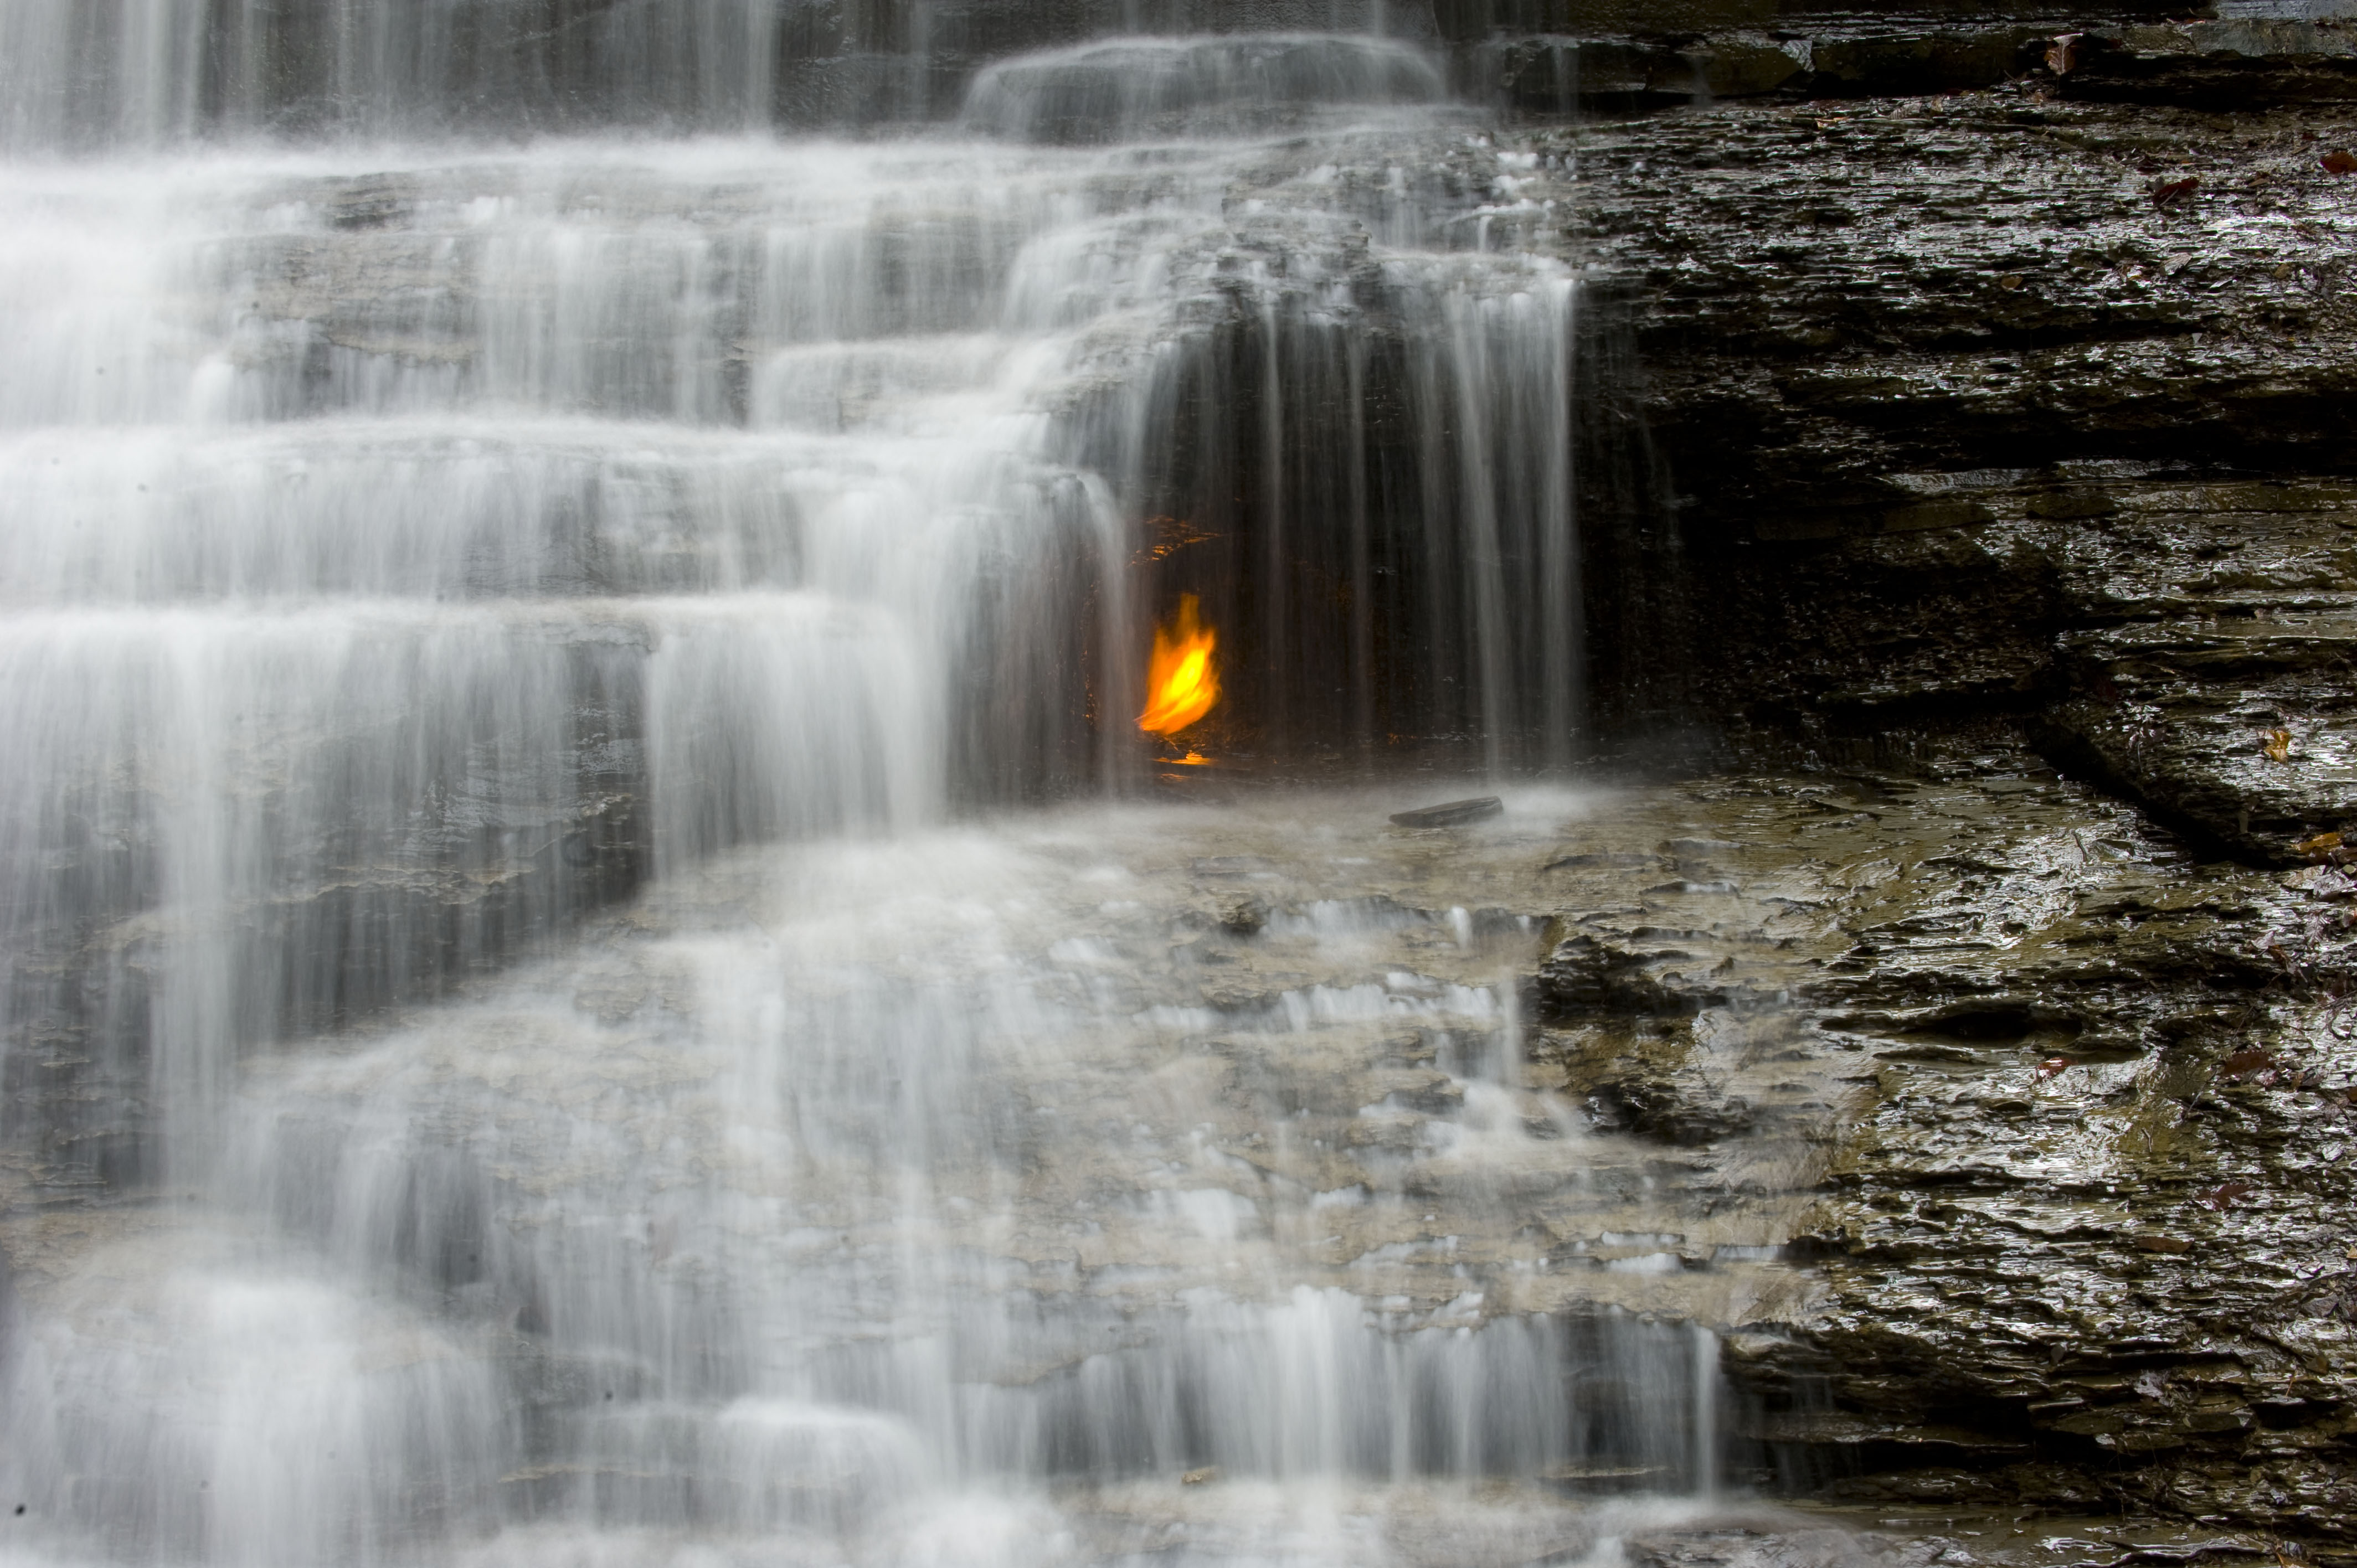 Eternal_flame_falls_7252